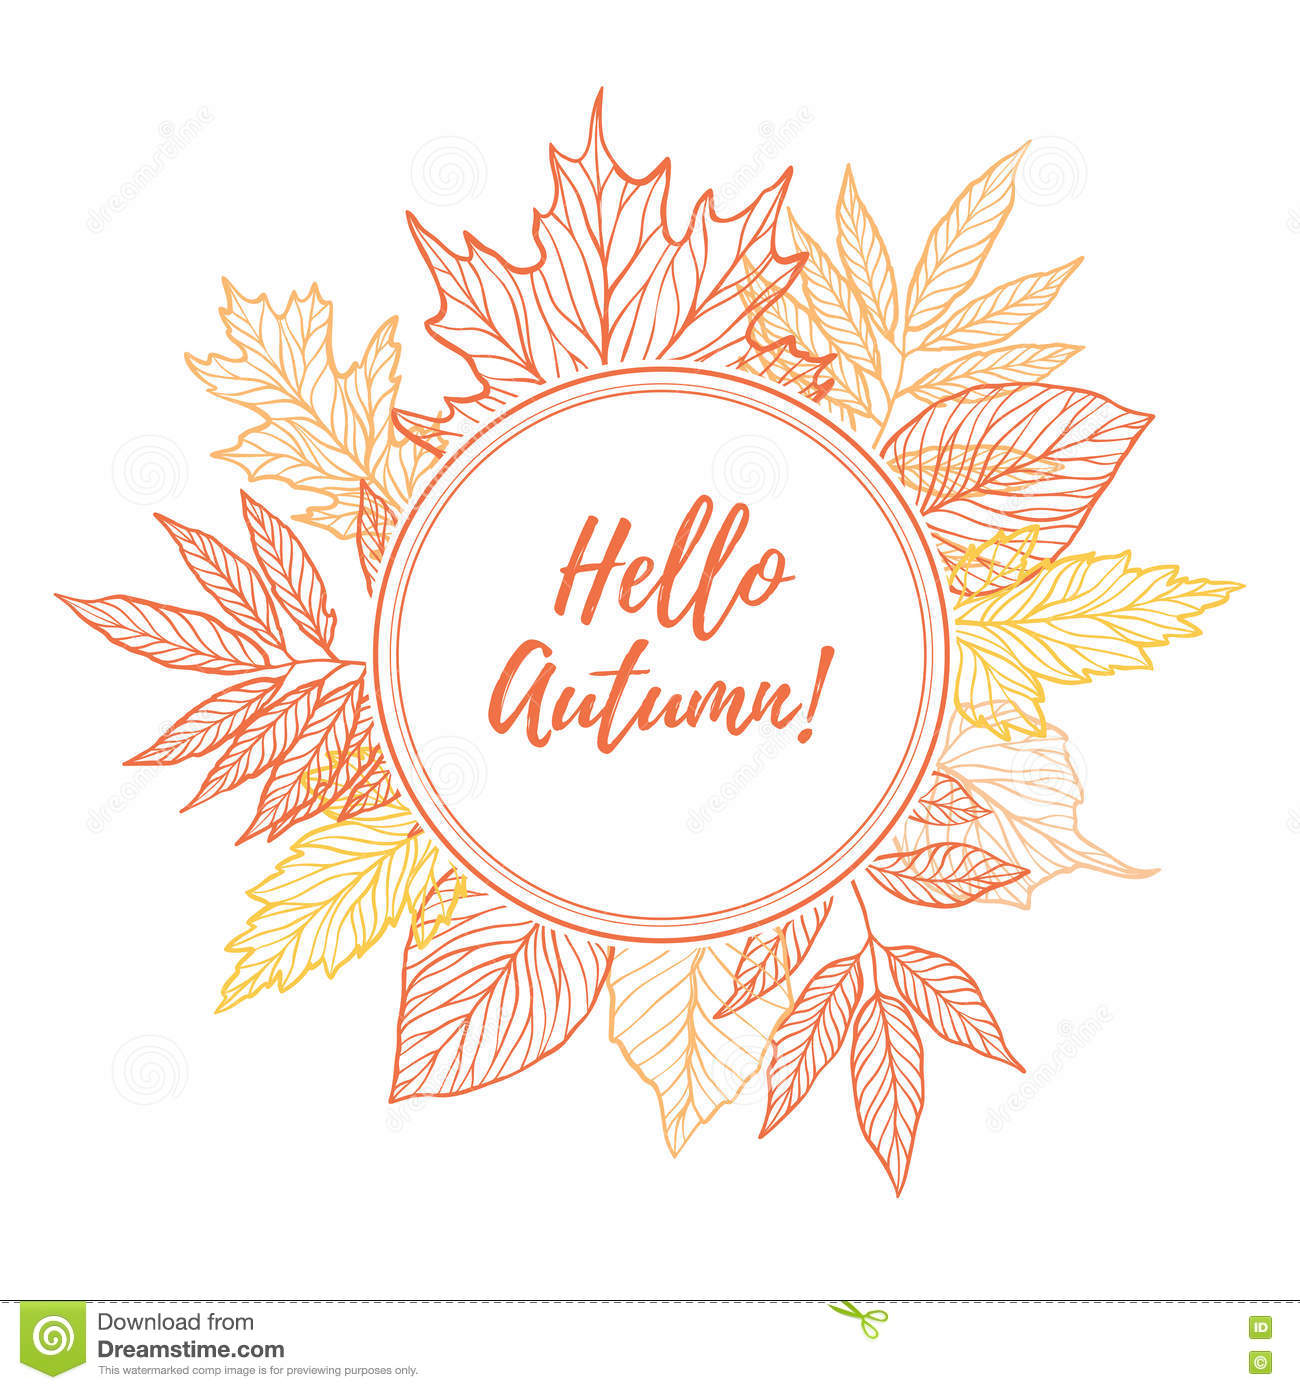 Autumn Falling Leaves Wallpaper Hand Drawn Vector Illustration Round Emblem With Fall